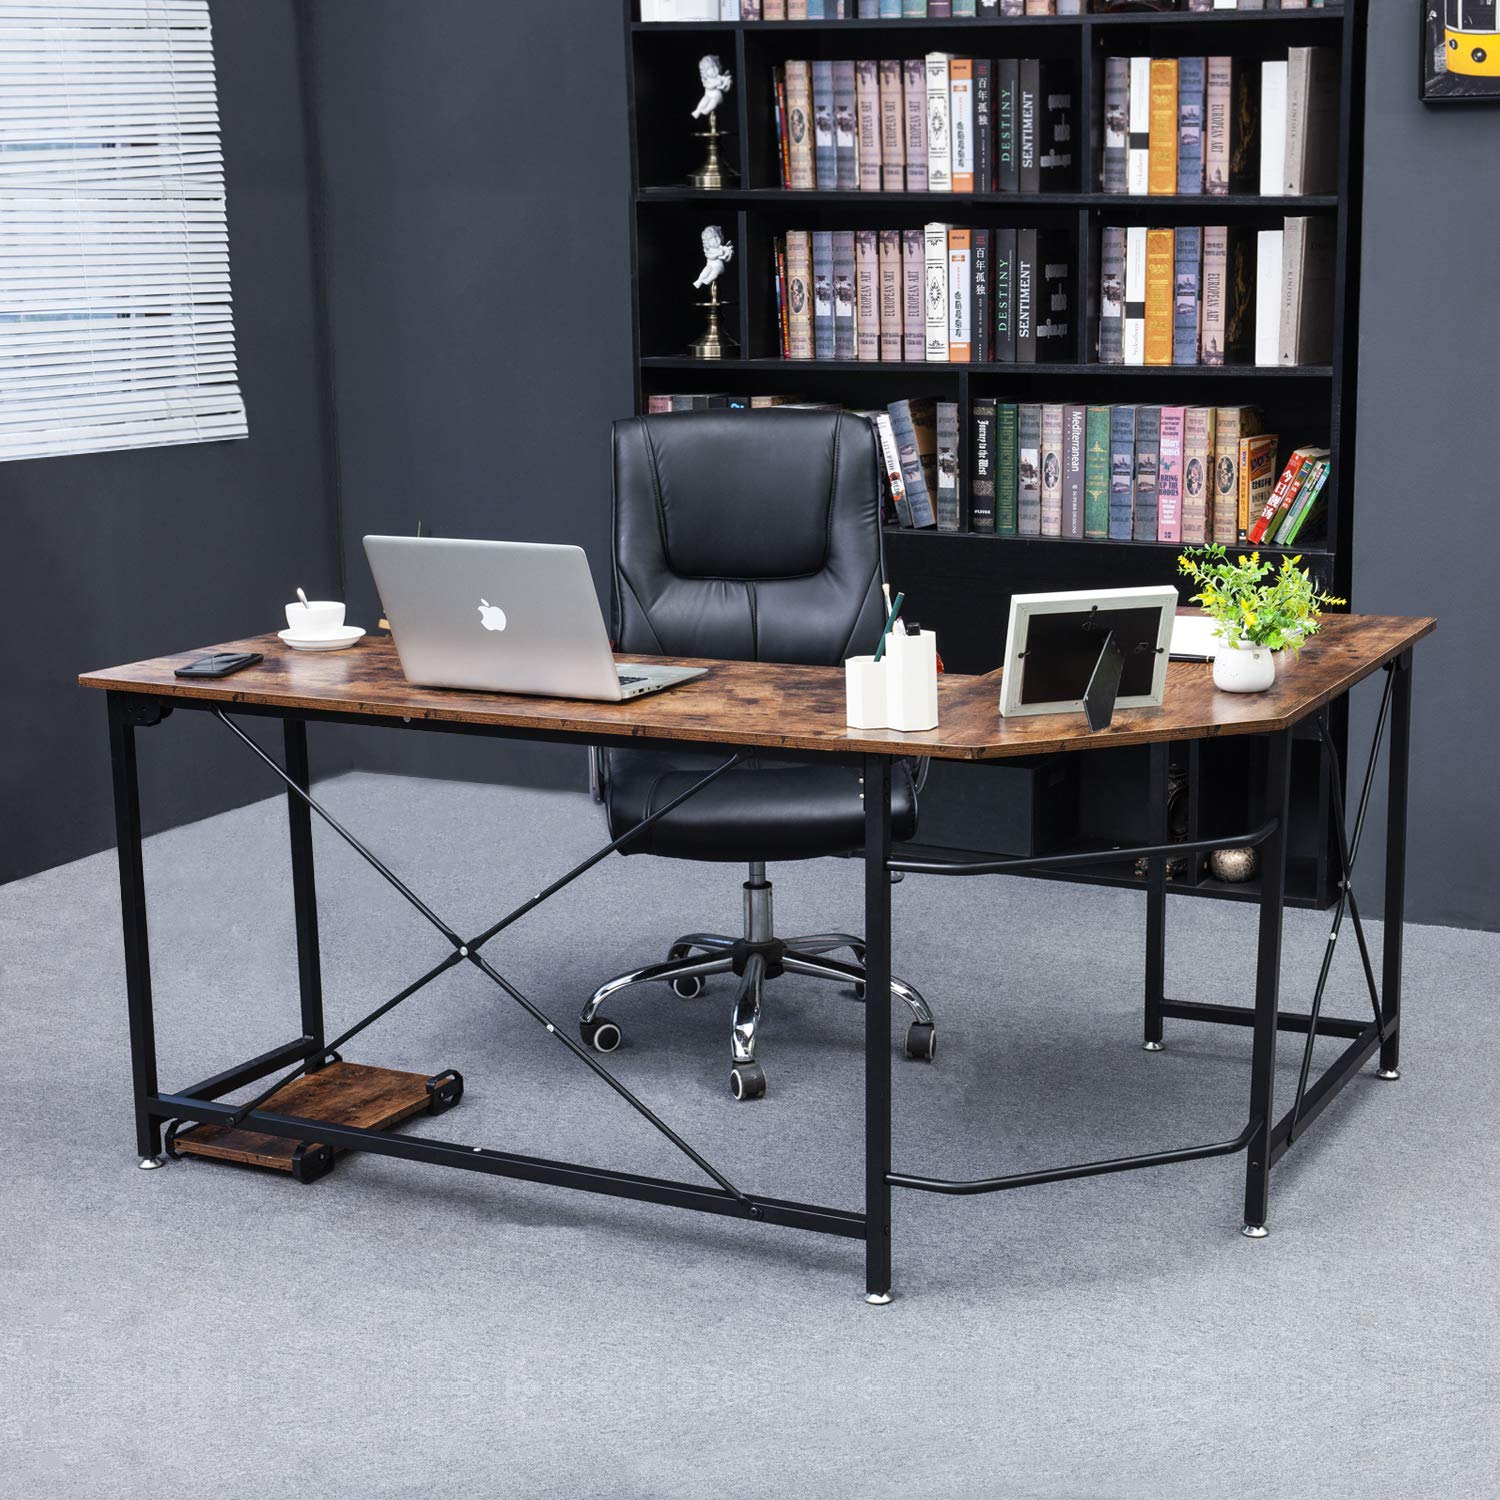 Oudort Corner Desk L Shaped Computer Desk Gaming Table PC Workstation with Stand for Home Office, Super Sturdy Design Easy to Assemble, Rustic Brown